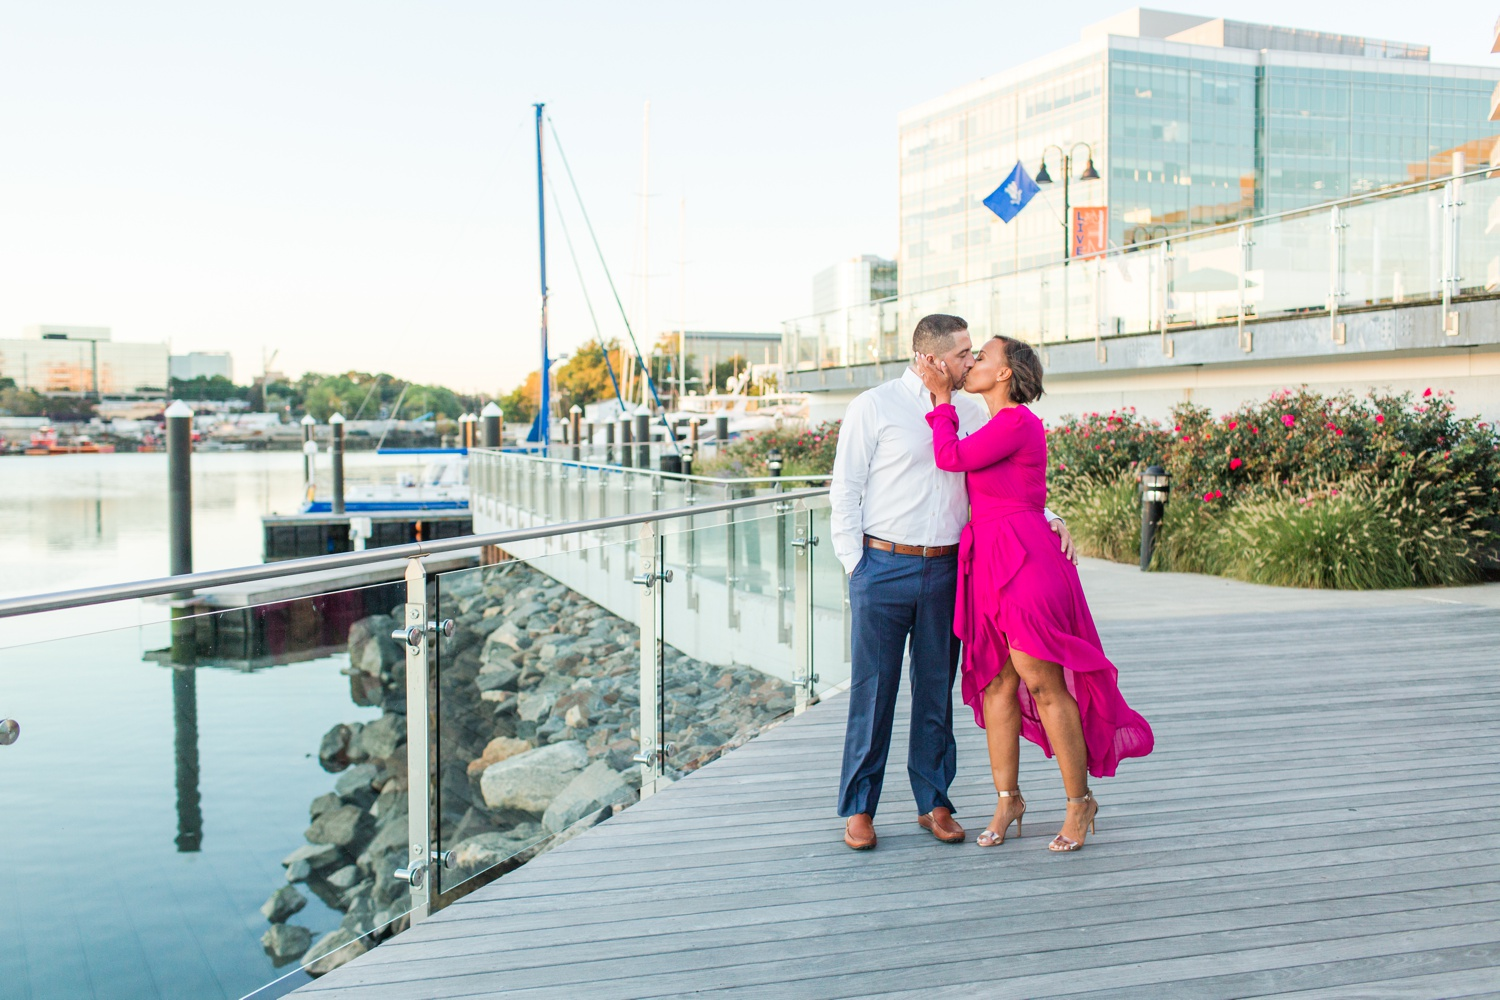 harbor-point-engagement-session-stamford-connecticut-top-ct-nyc-destination-wedding-photographer-shaina-lee-photography-photo